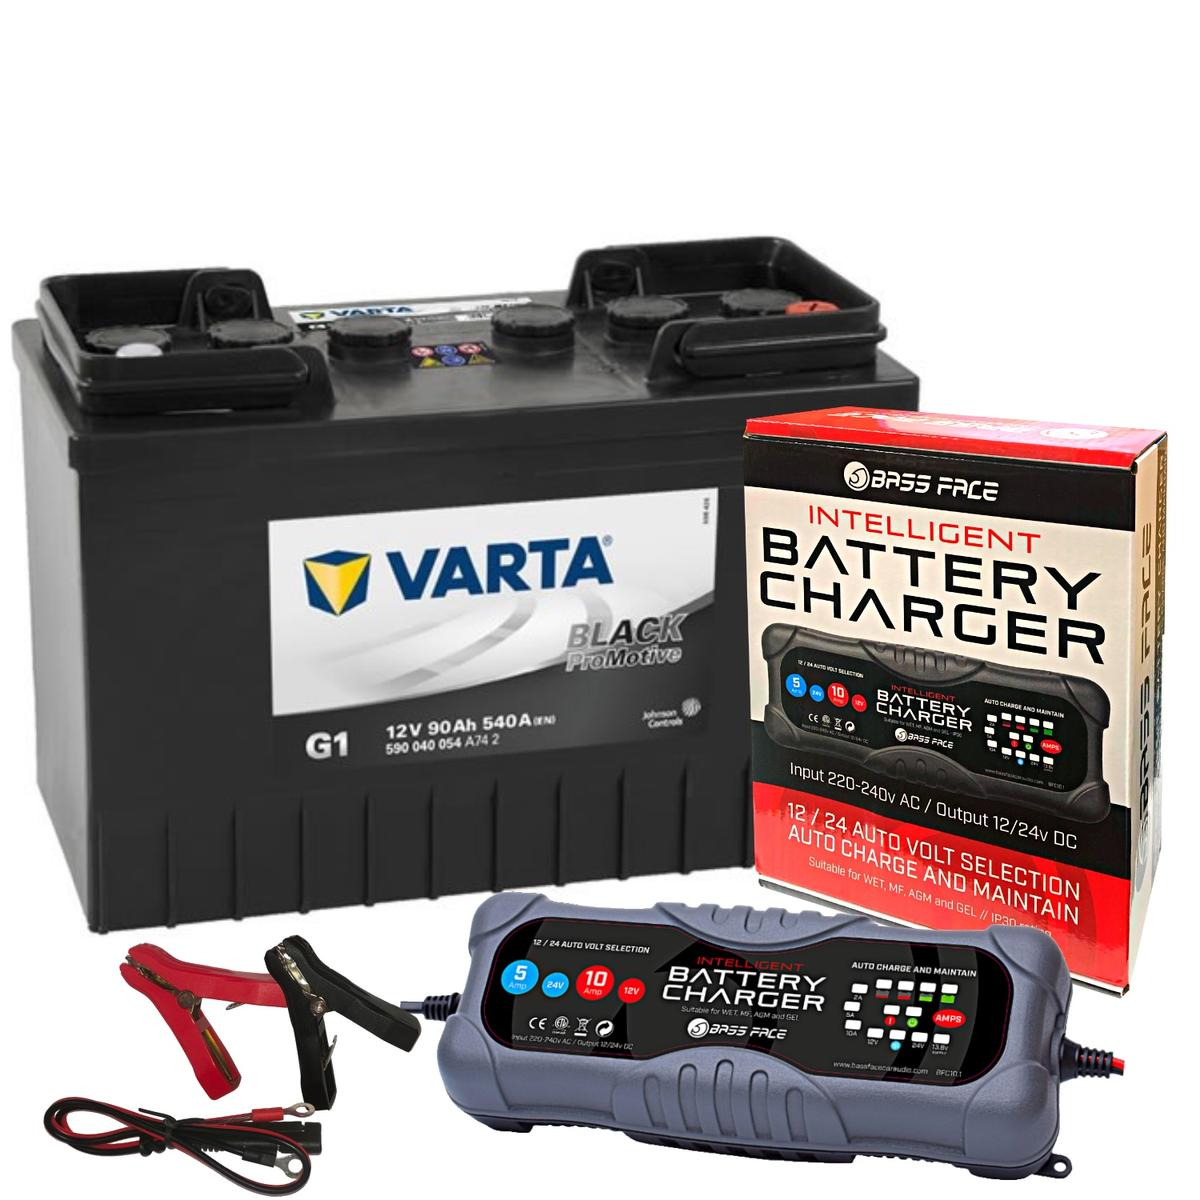 Varta G1 Commerial Battery 12v 2 Year 643/645 90Ah 540CCA W/ 10 Amp Charger